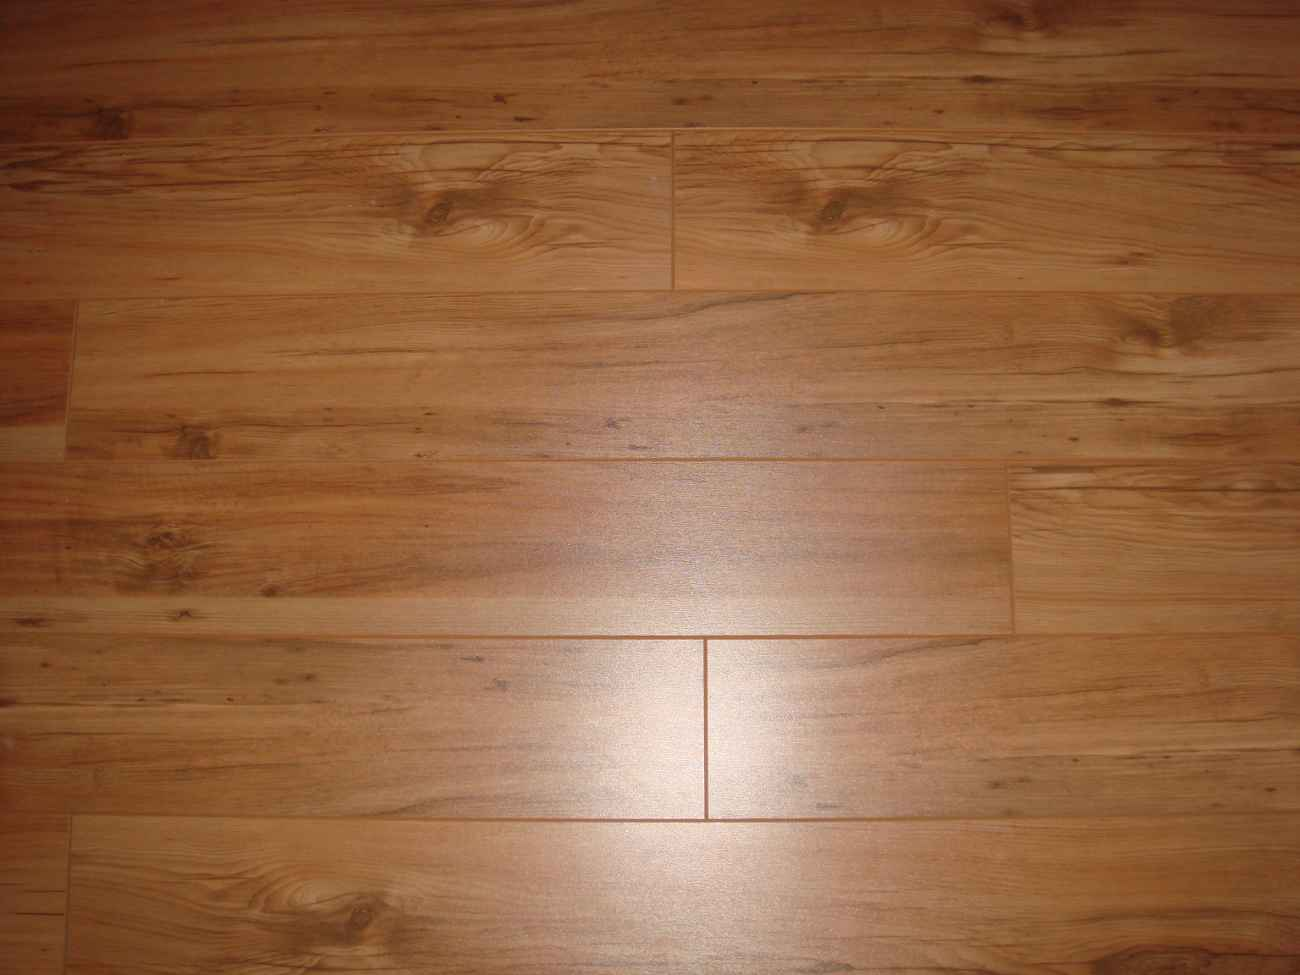 Wood Grain Ceramic Tile Feel The Home: tile wood floor